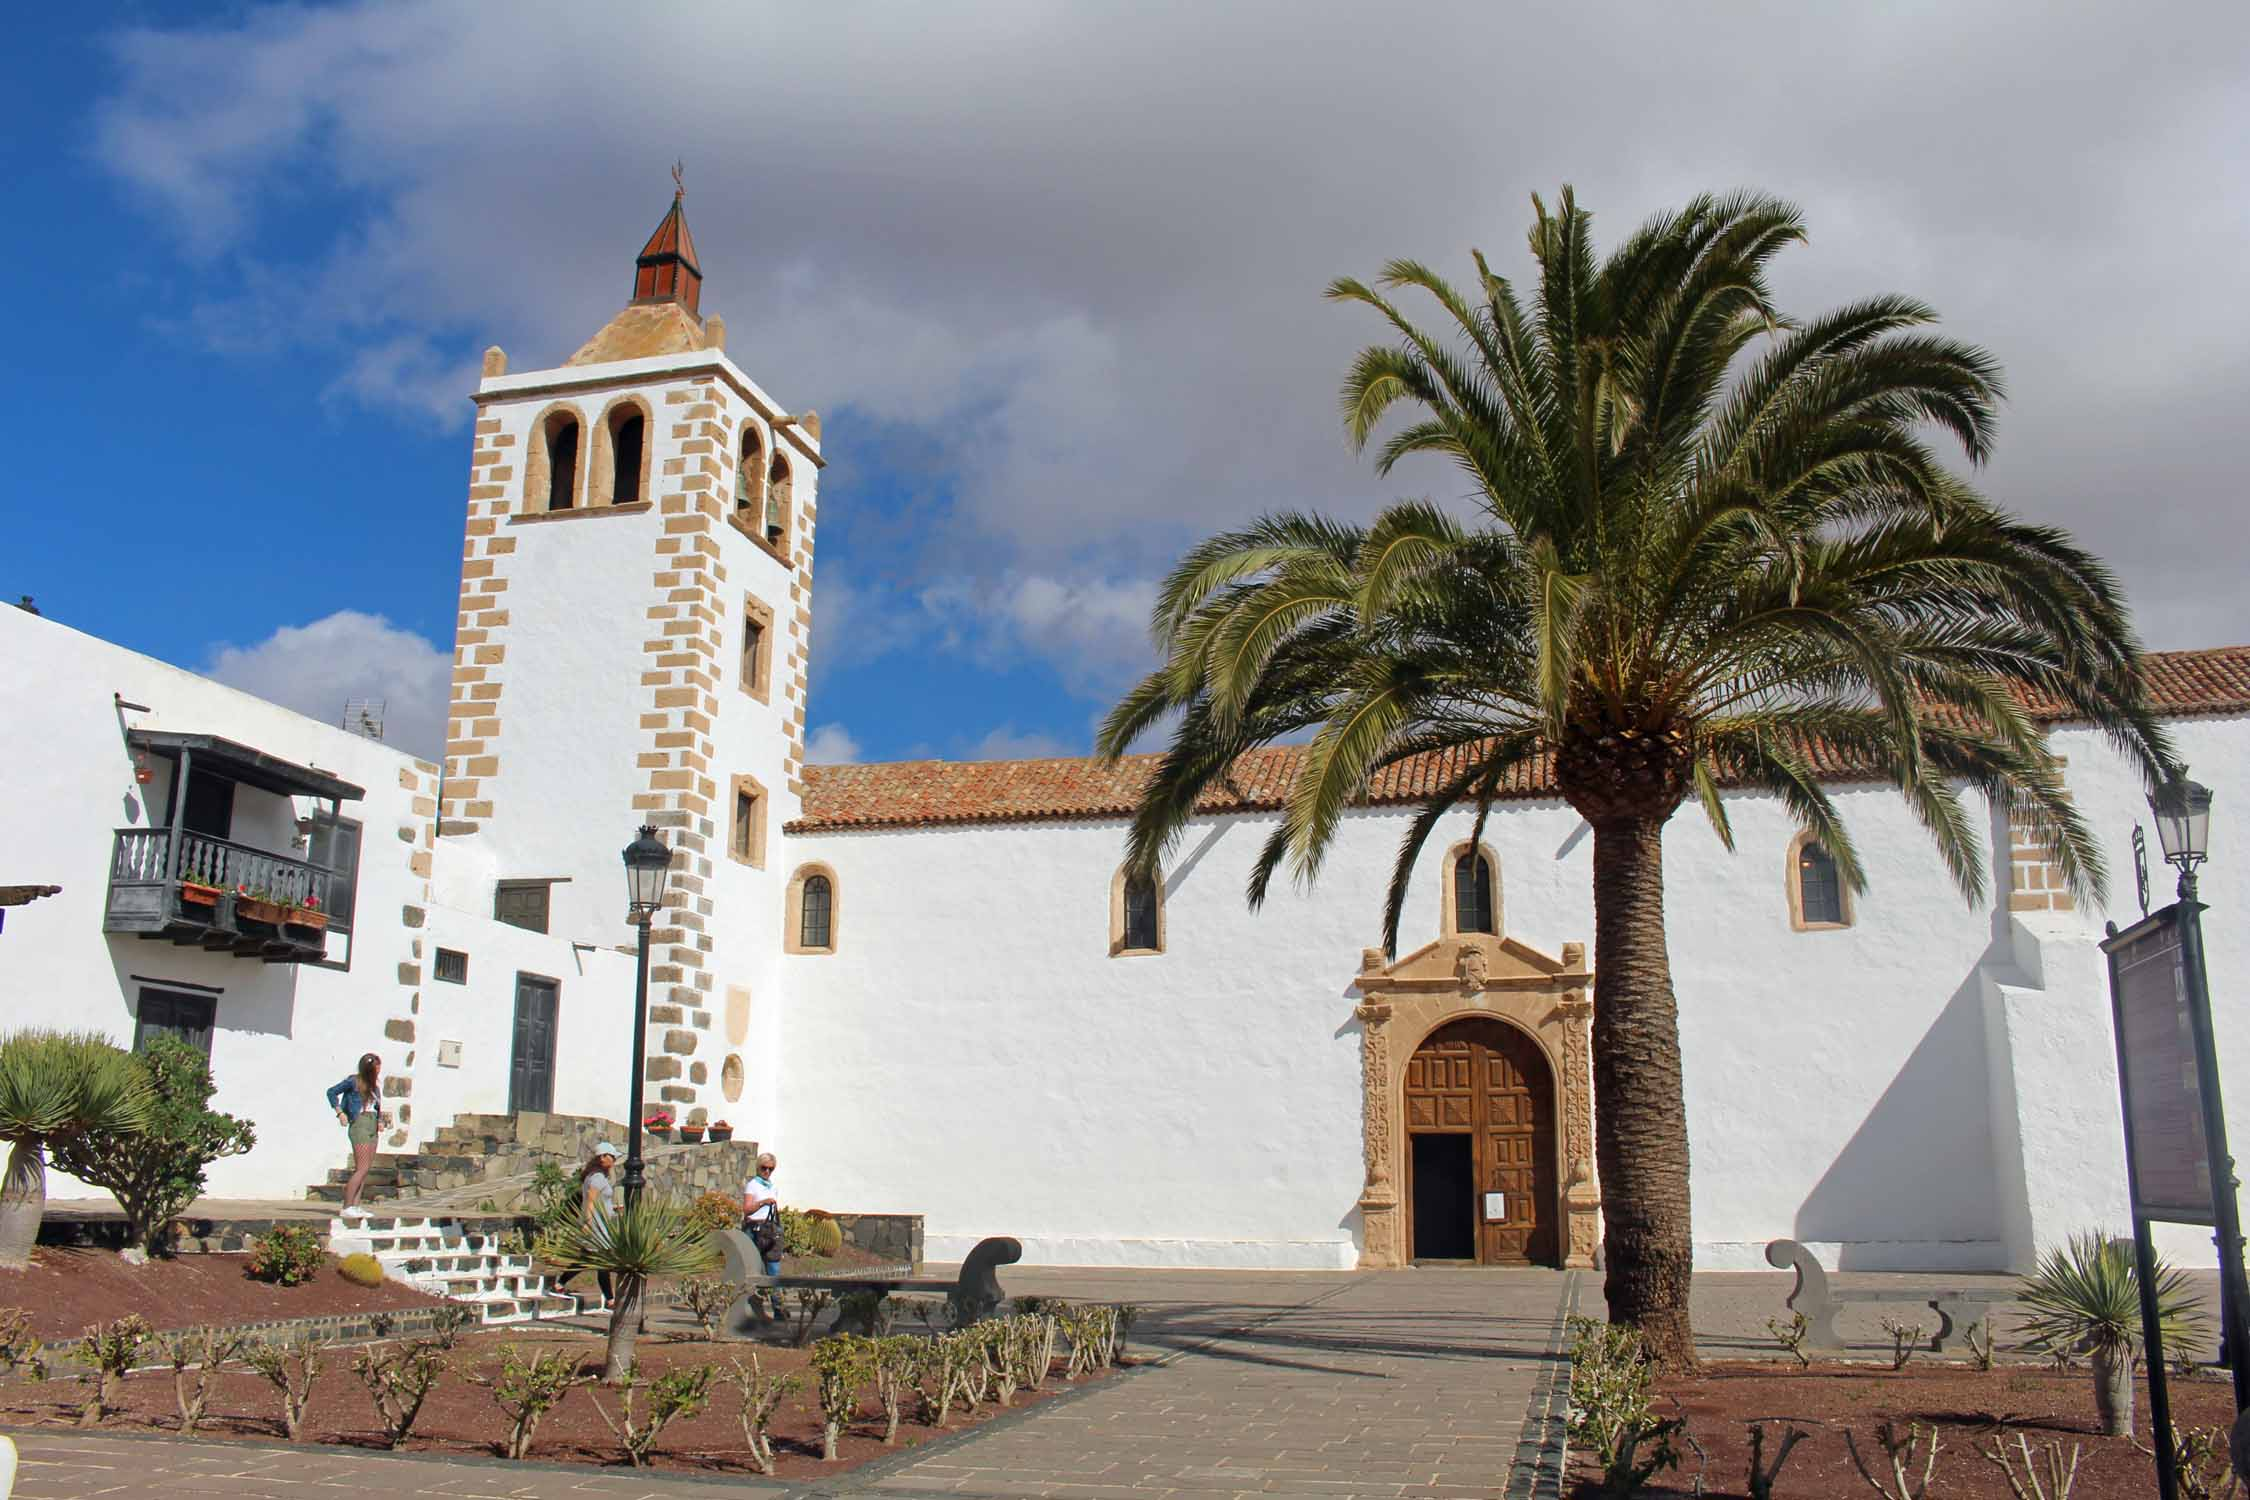 Fuerteventura, Betancuria, church